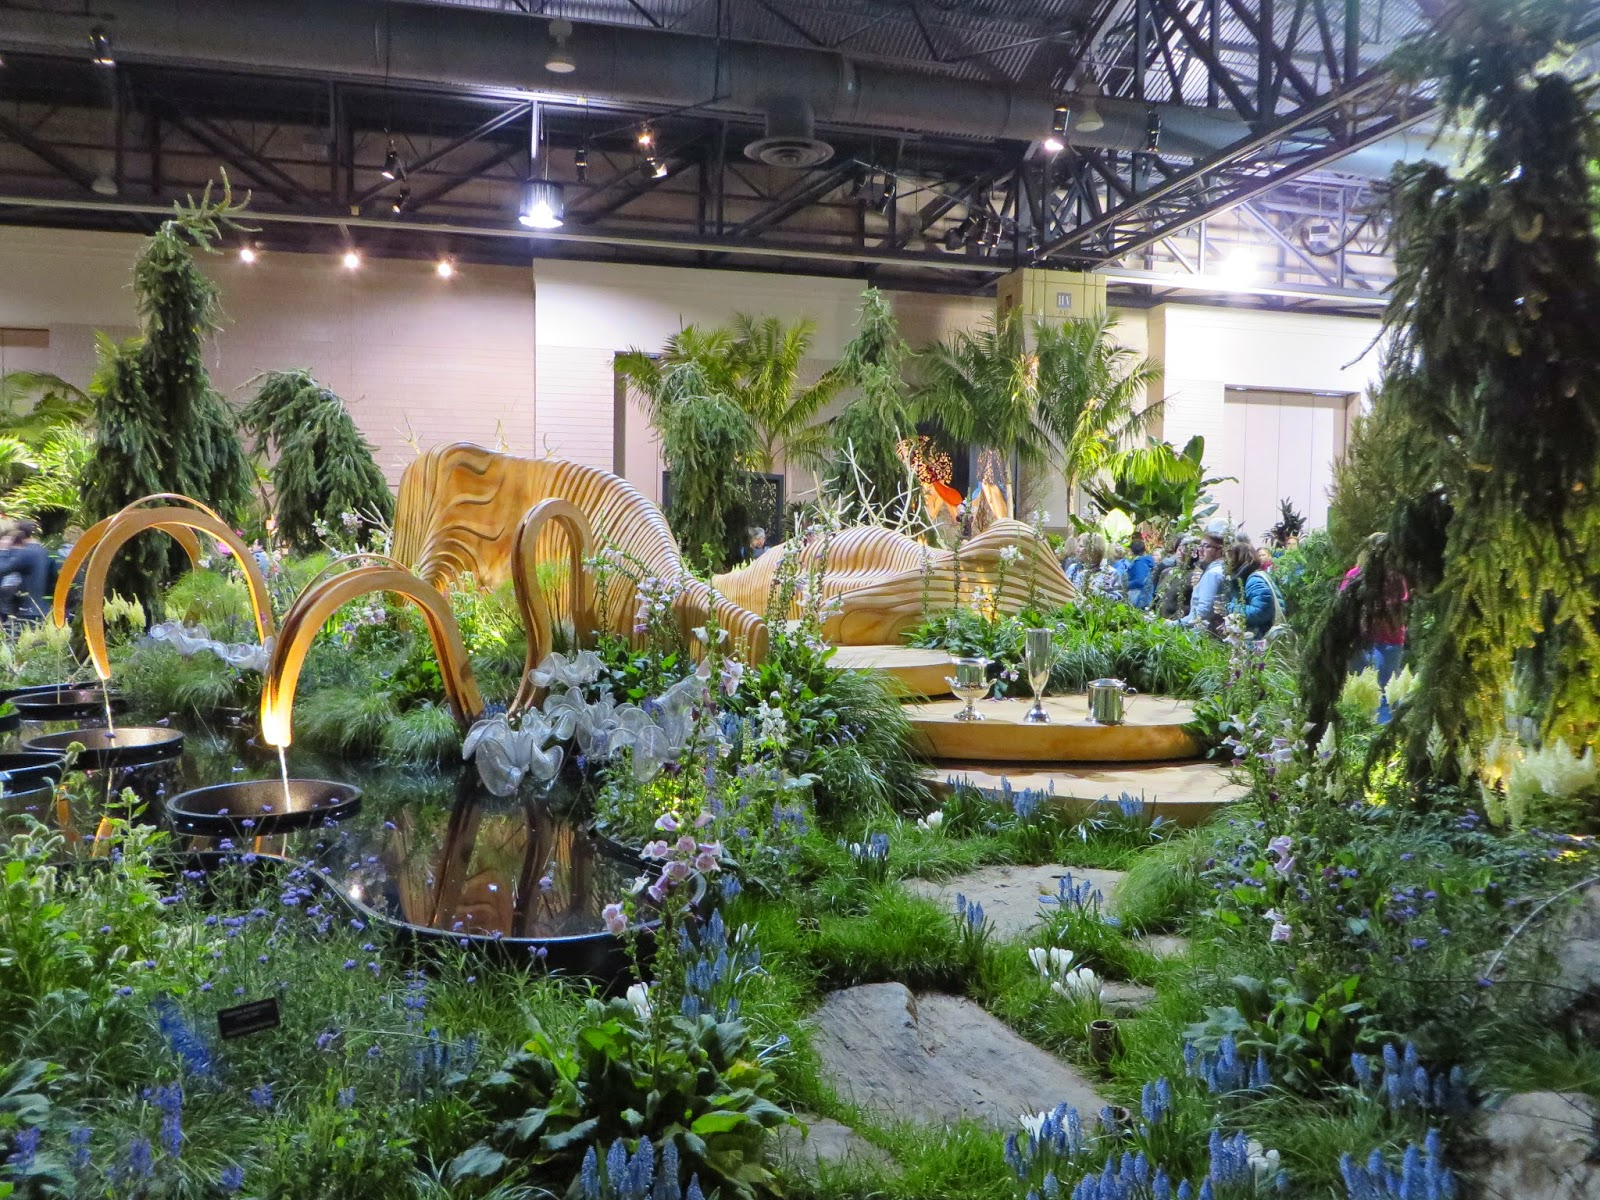 Washington Speaks At the 2015 Philadelphia International Flower Show